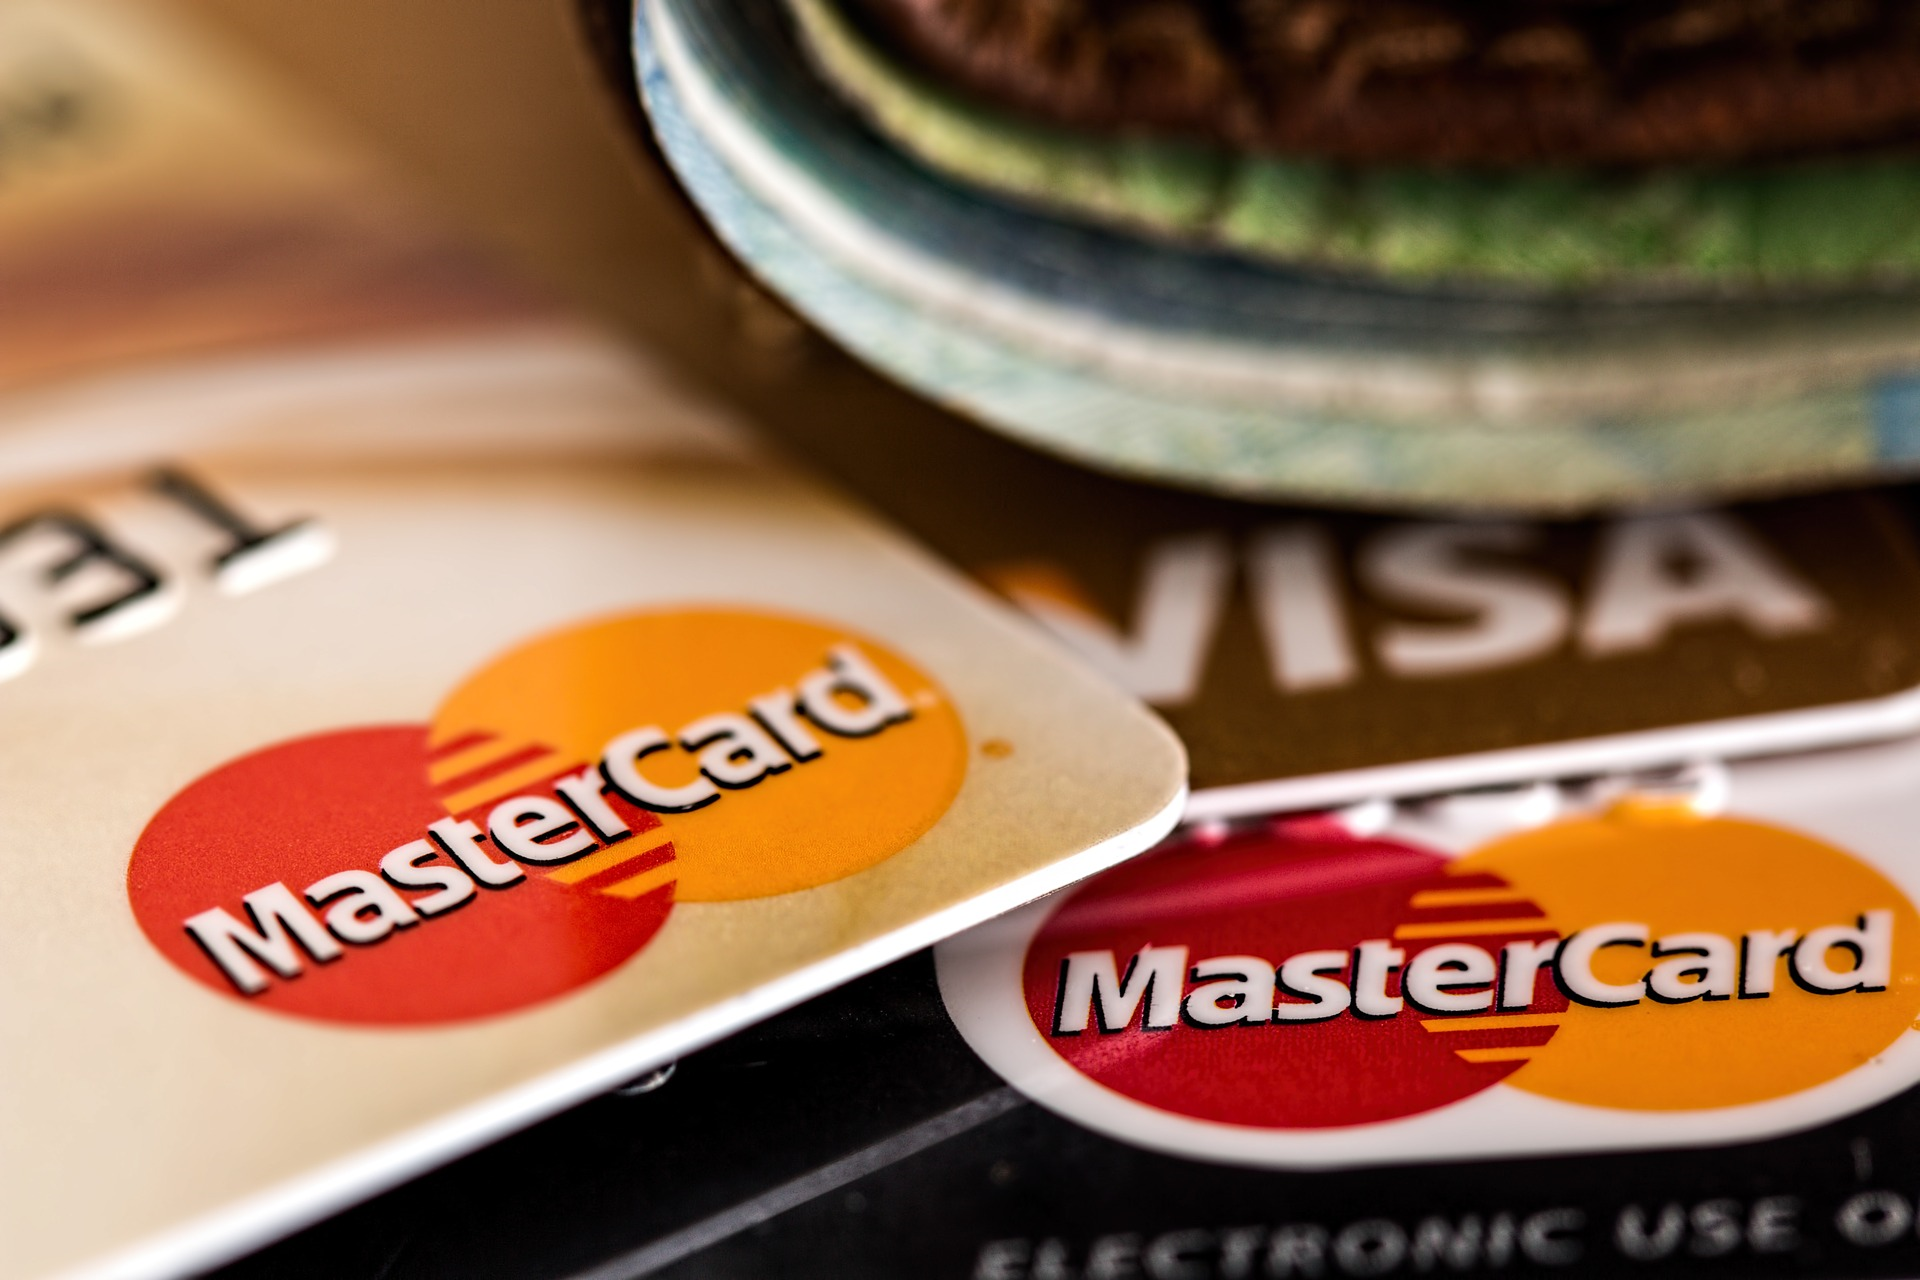 Visa And Mastercard: 2 Stocks, 1 Superior Business Model